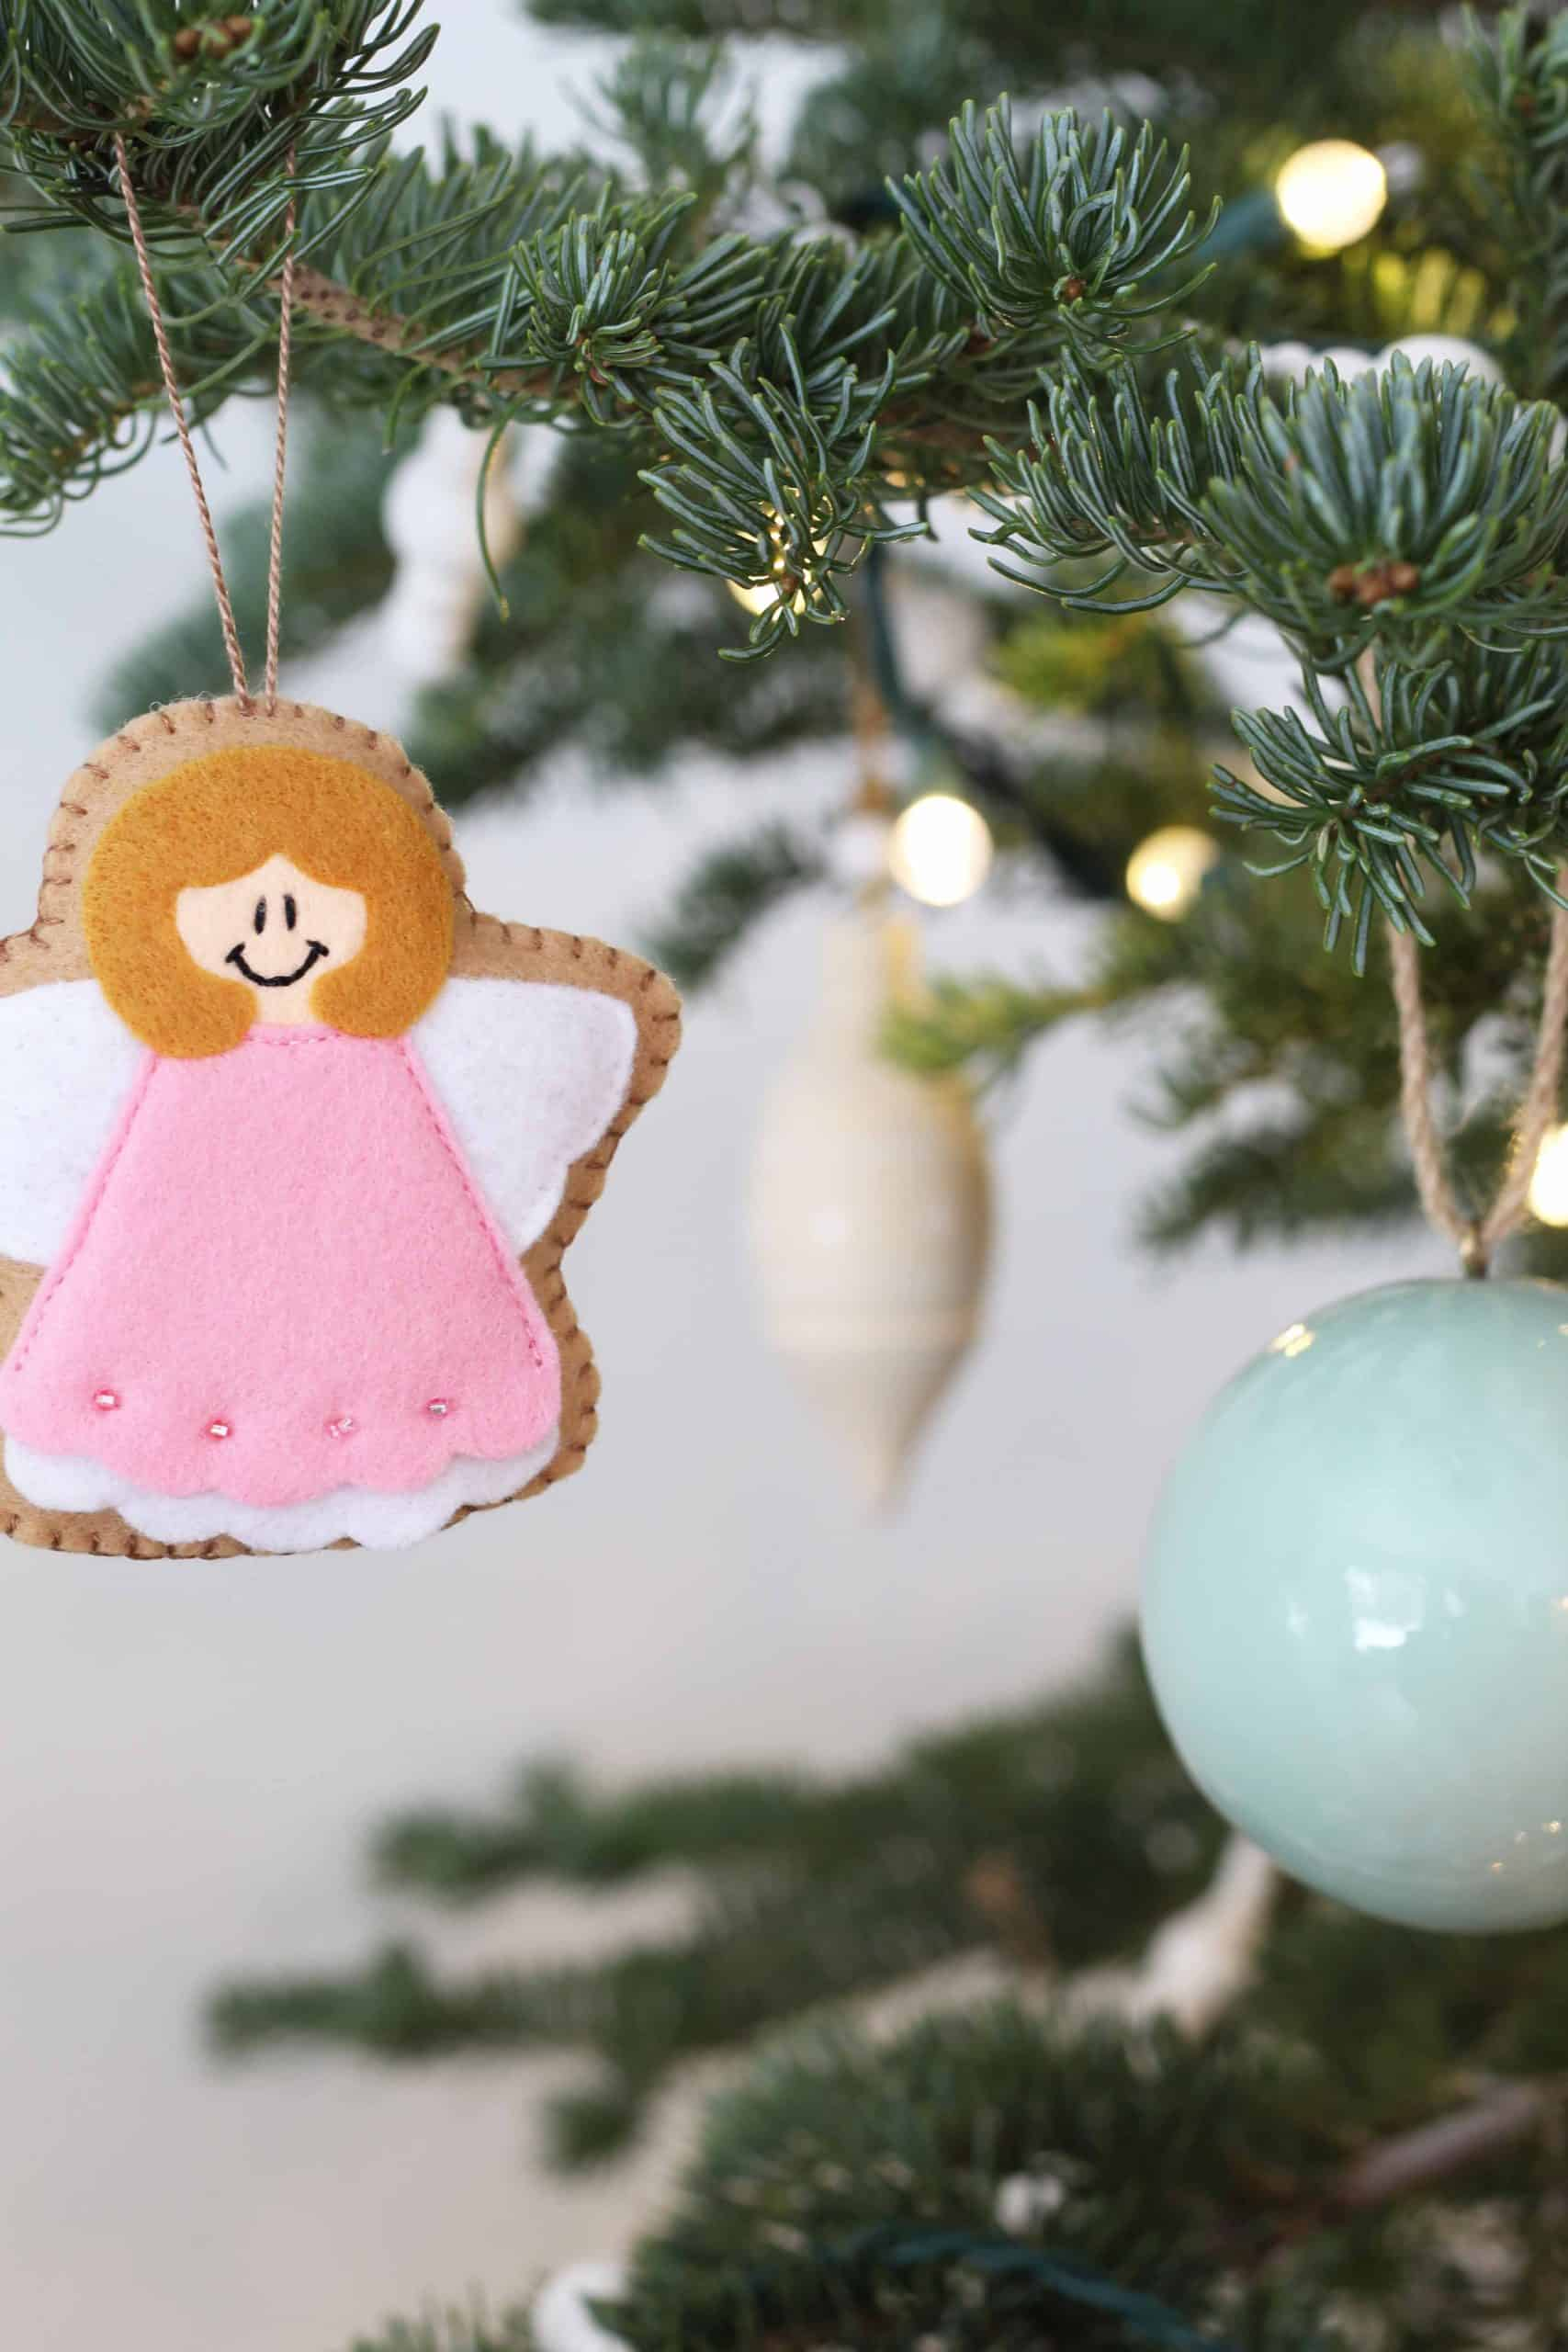 pink felt christmas angel ornament, land of nod colorful ball ornaments